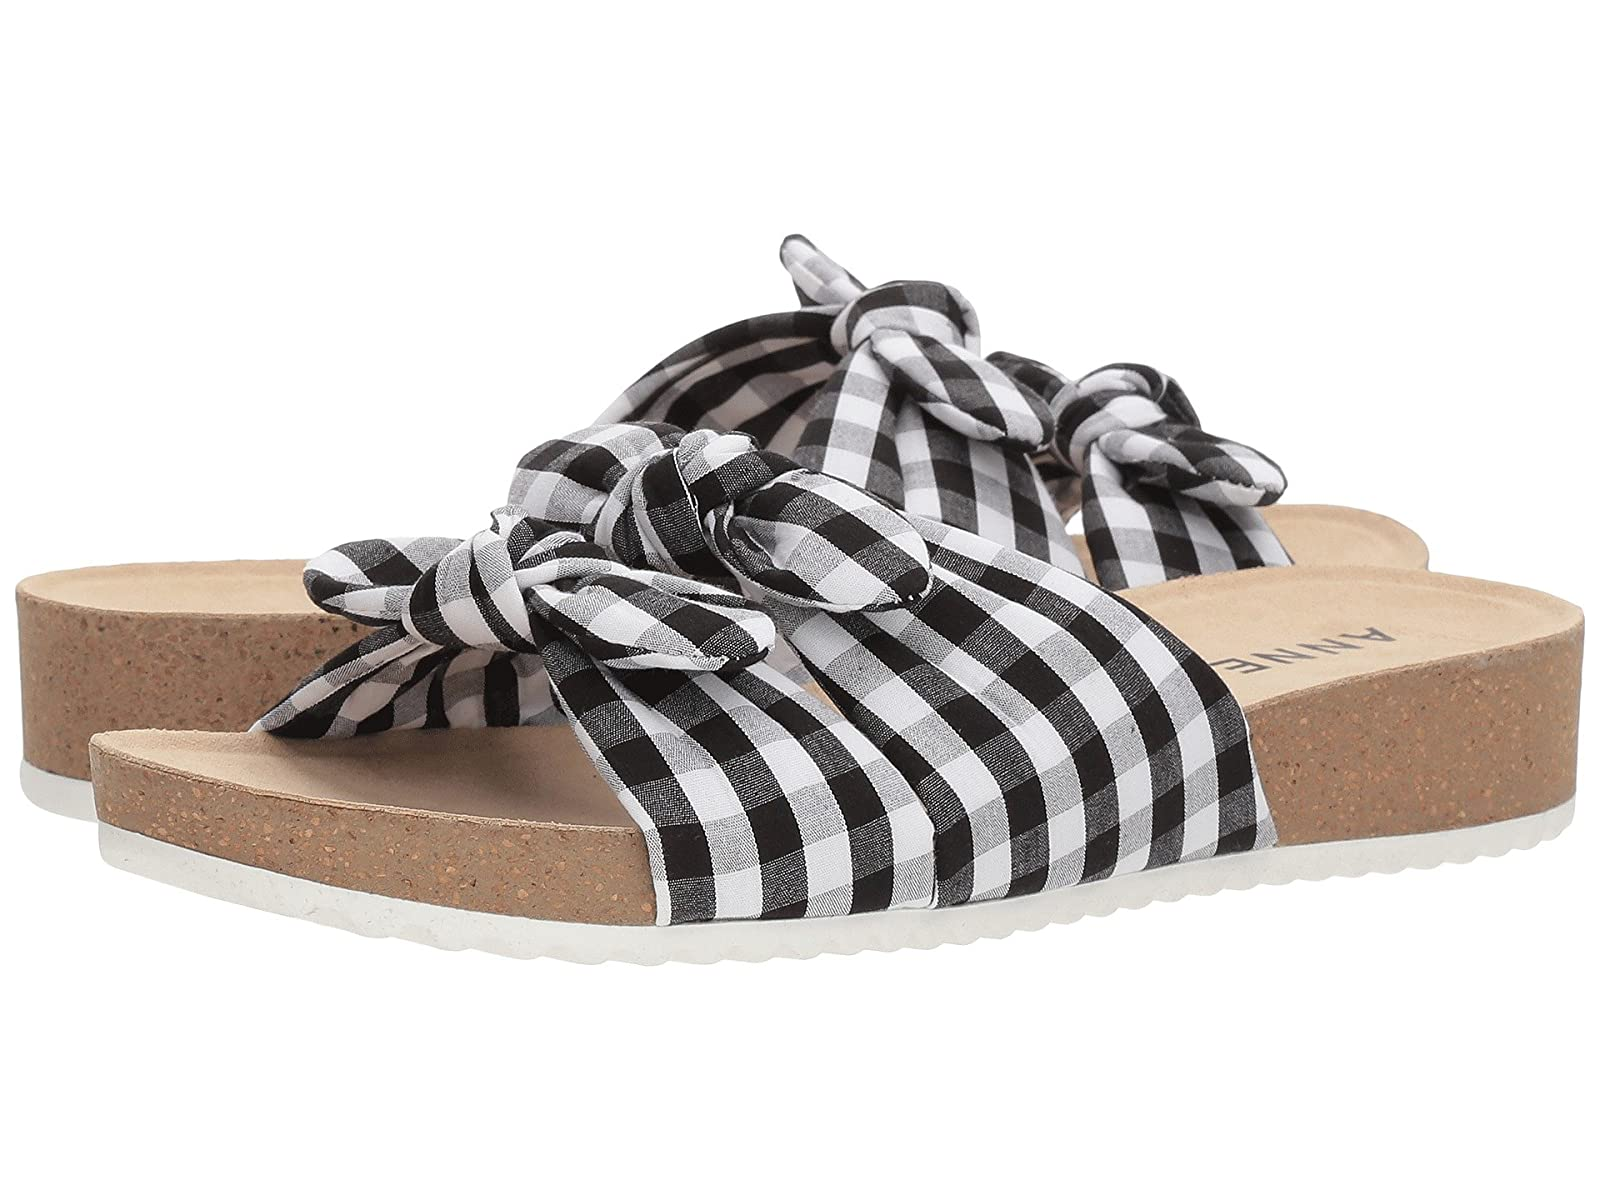 Anne Klein QuiltComfortable and distinctive shoes